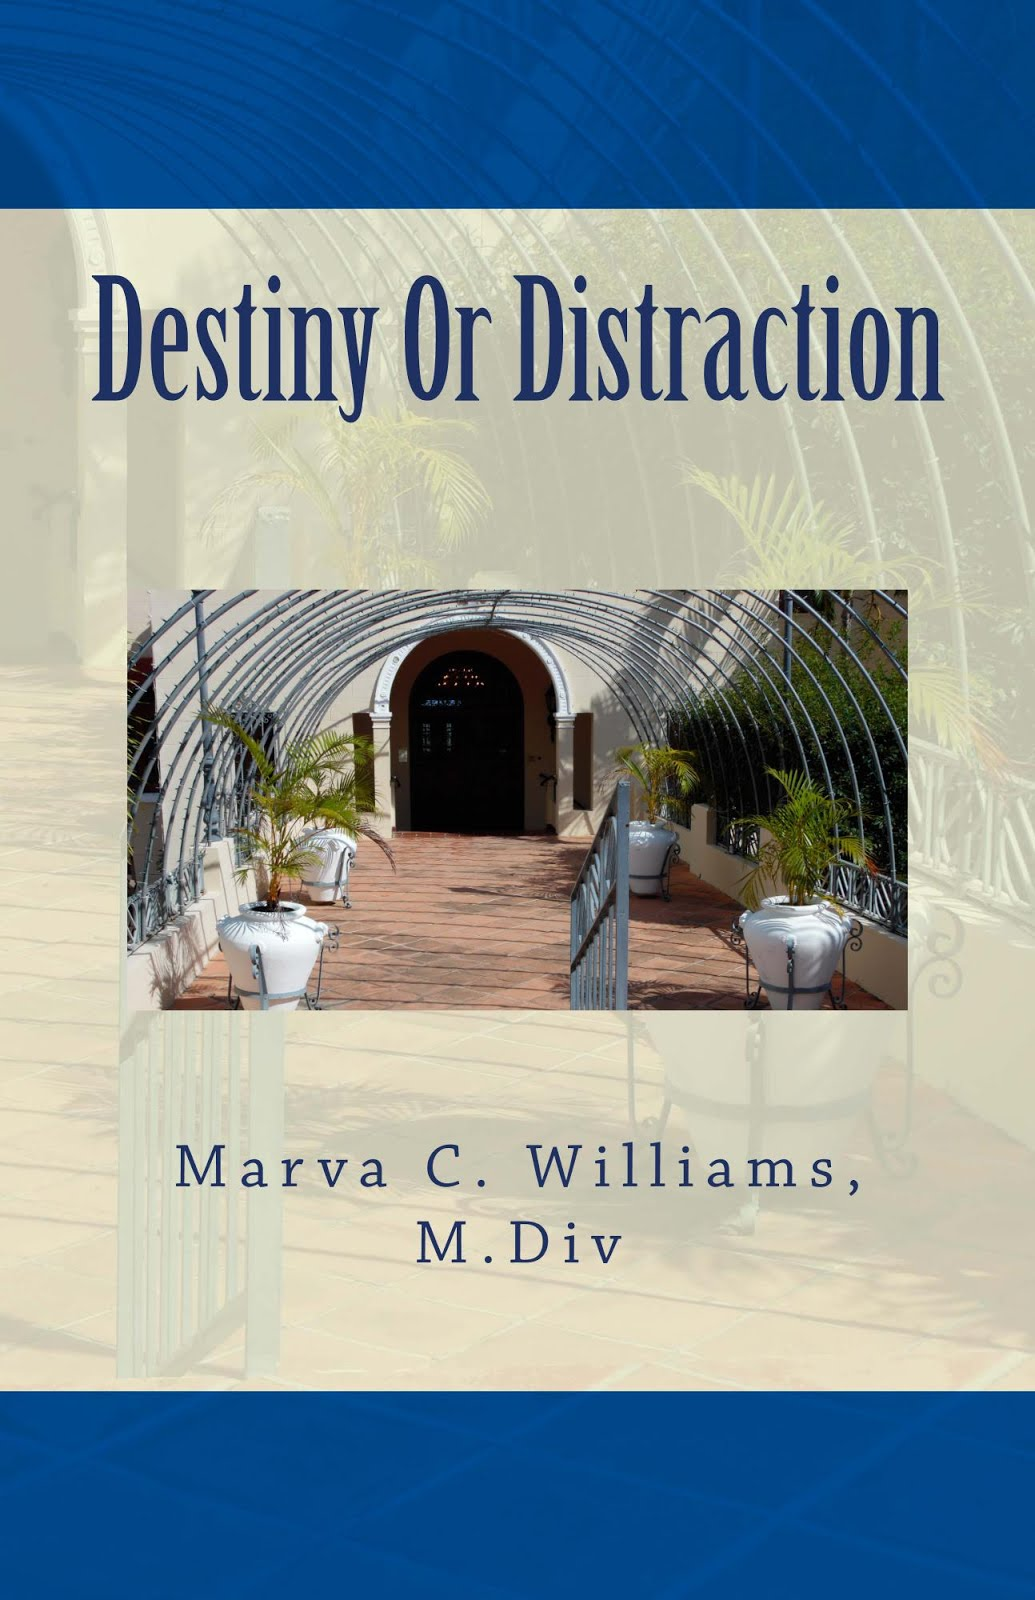 Destiny or Distraction